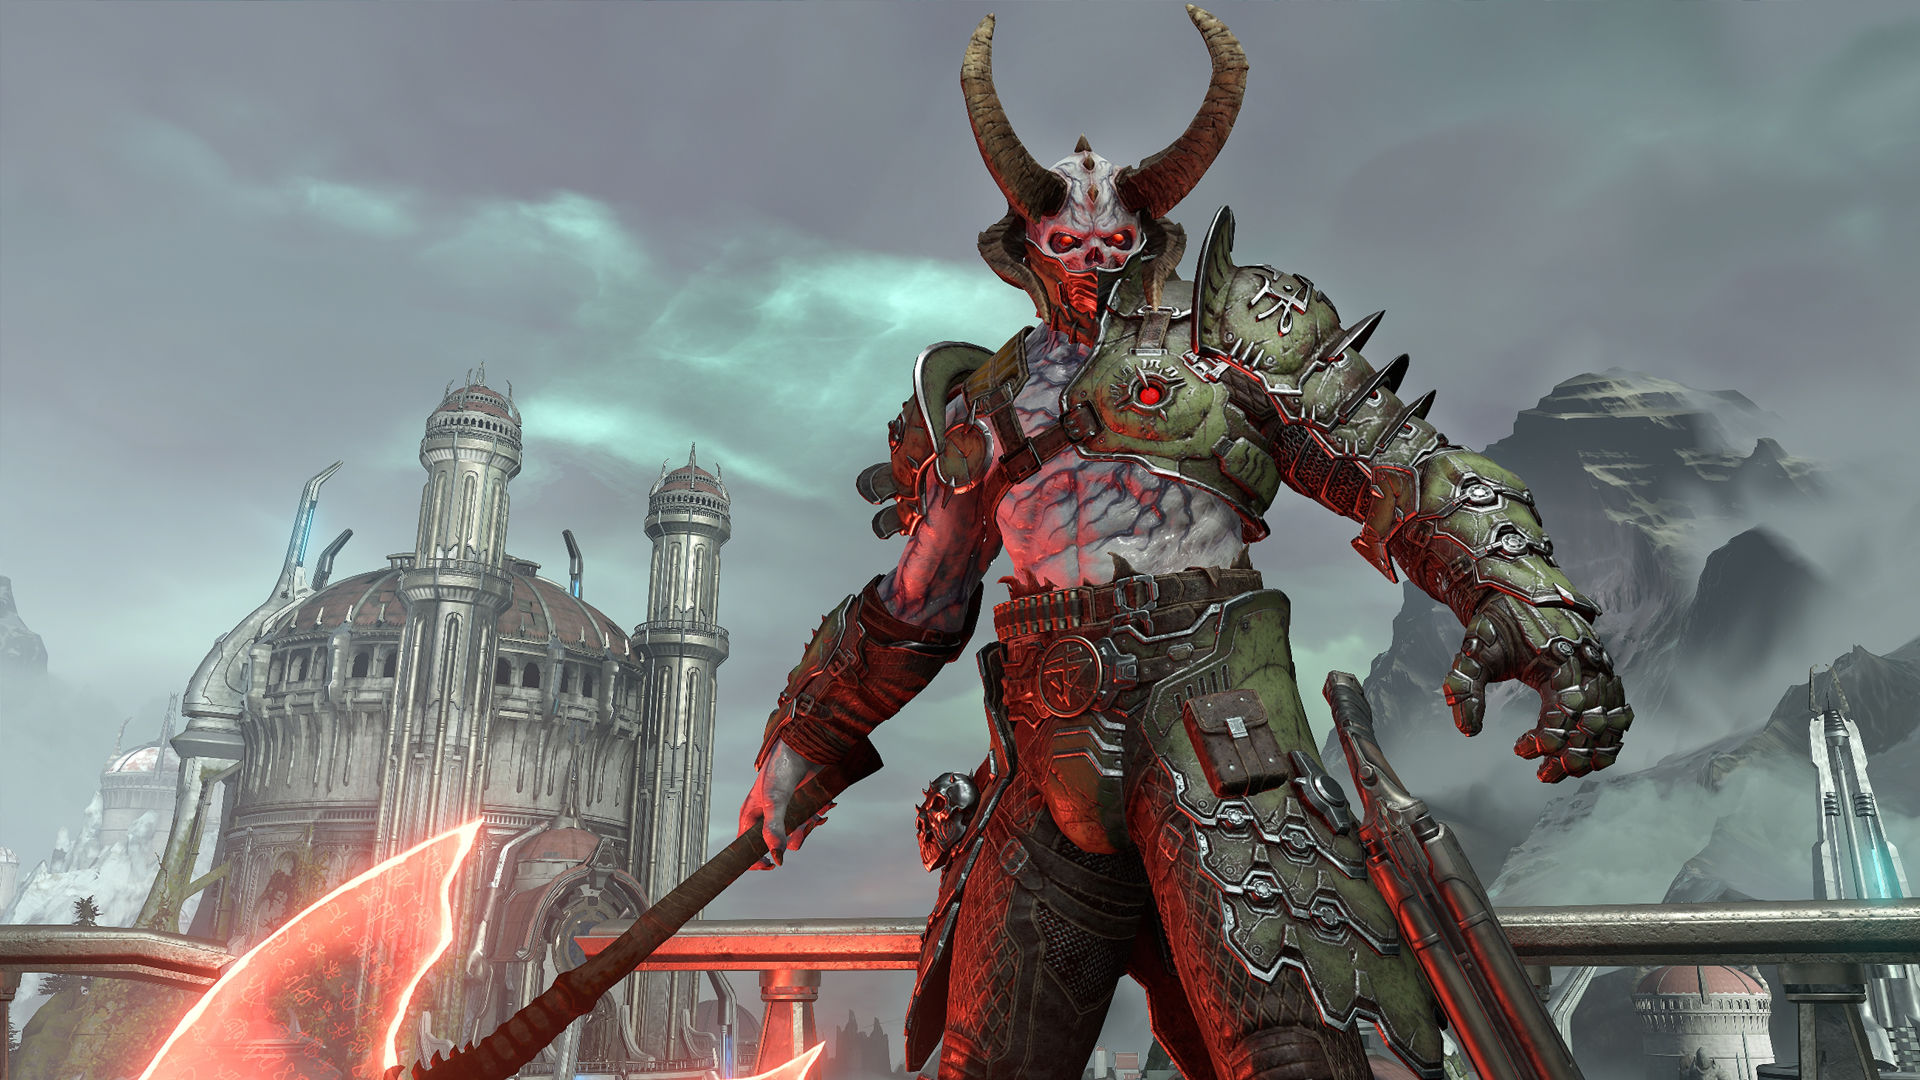 DOOM Eternal earned a total of $ 450 million